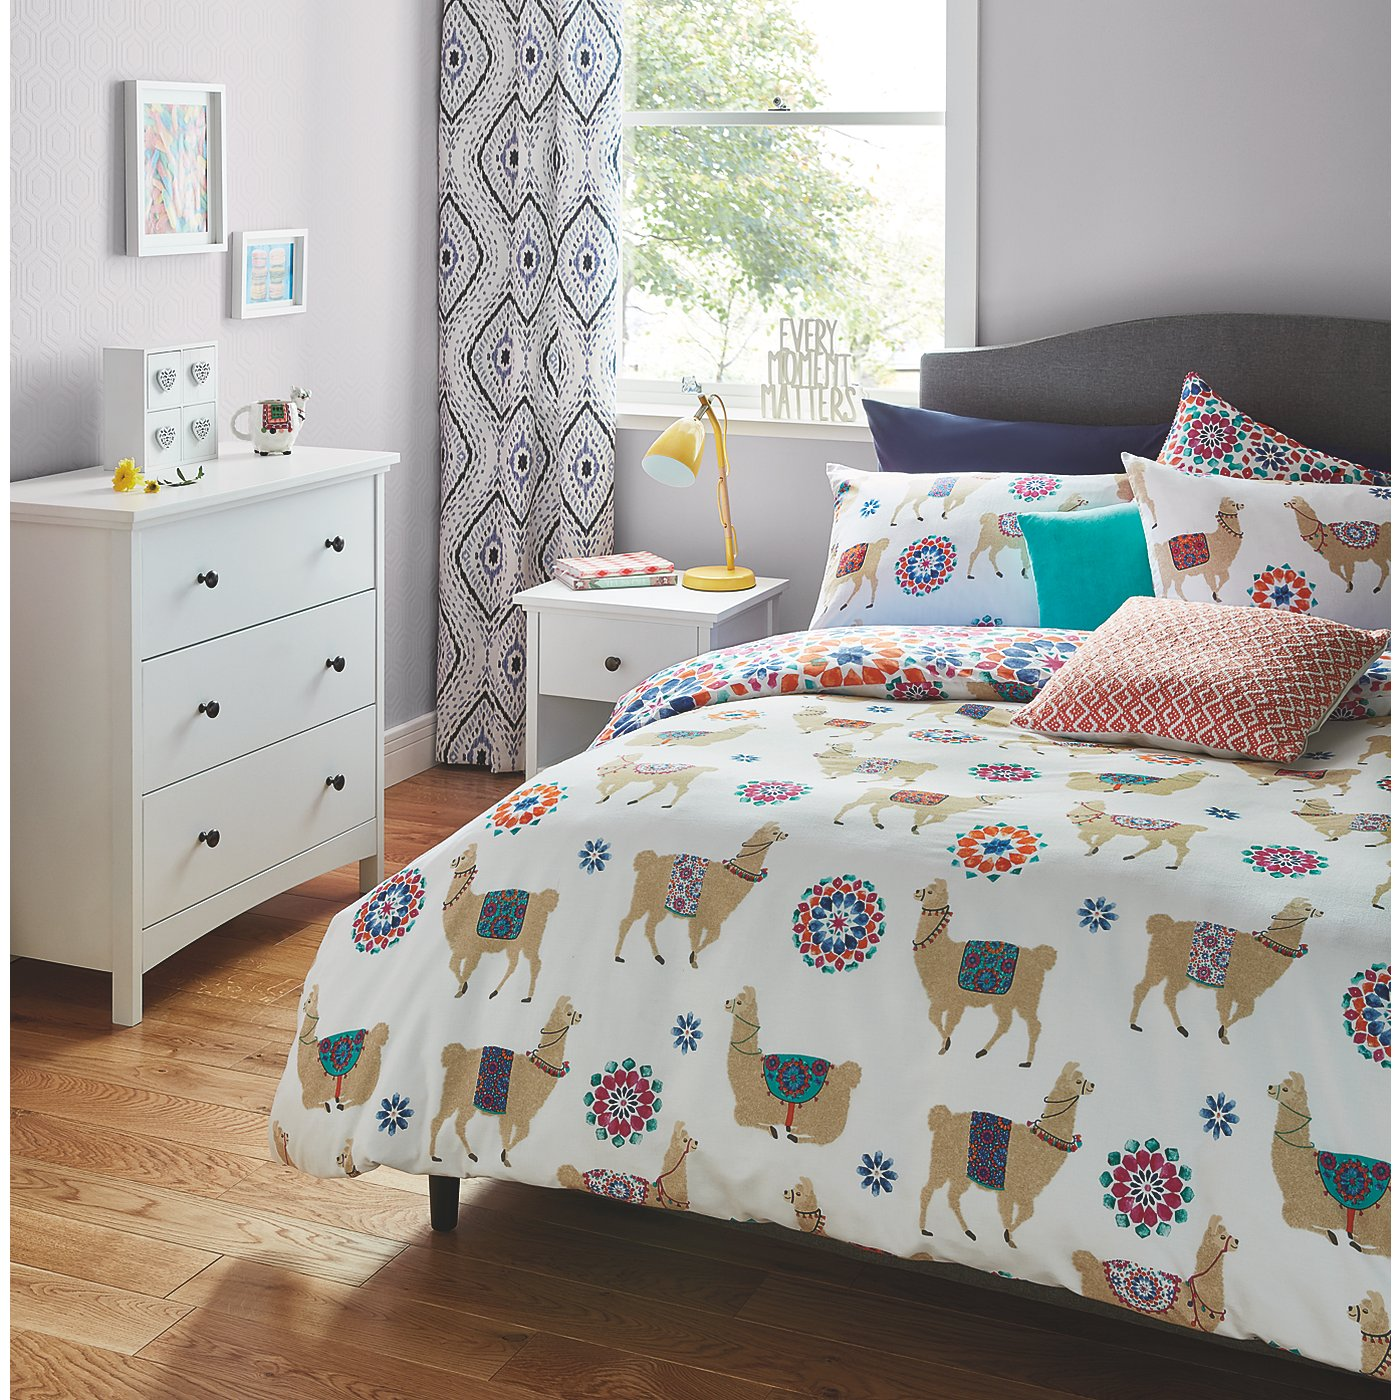 Llama Print Bedroom Range Loading Zoom